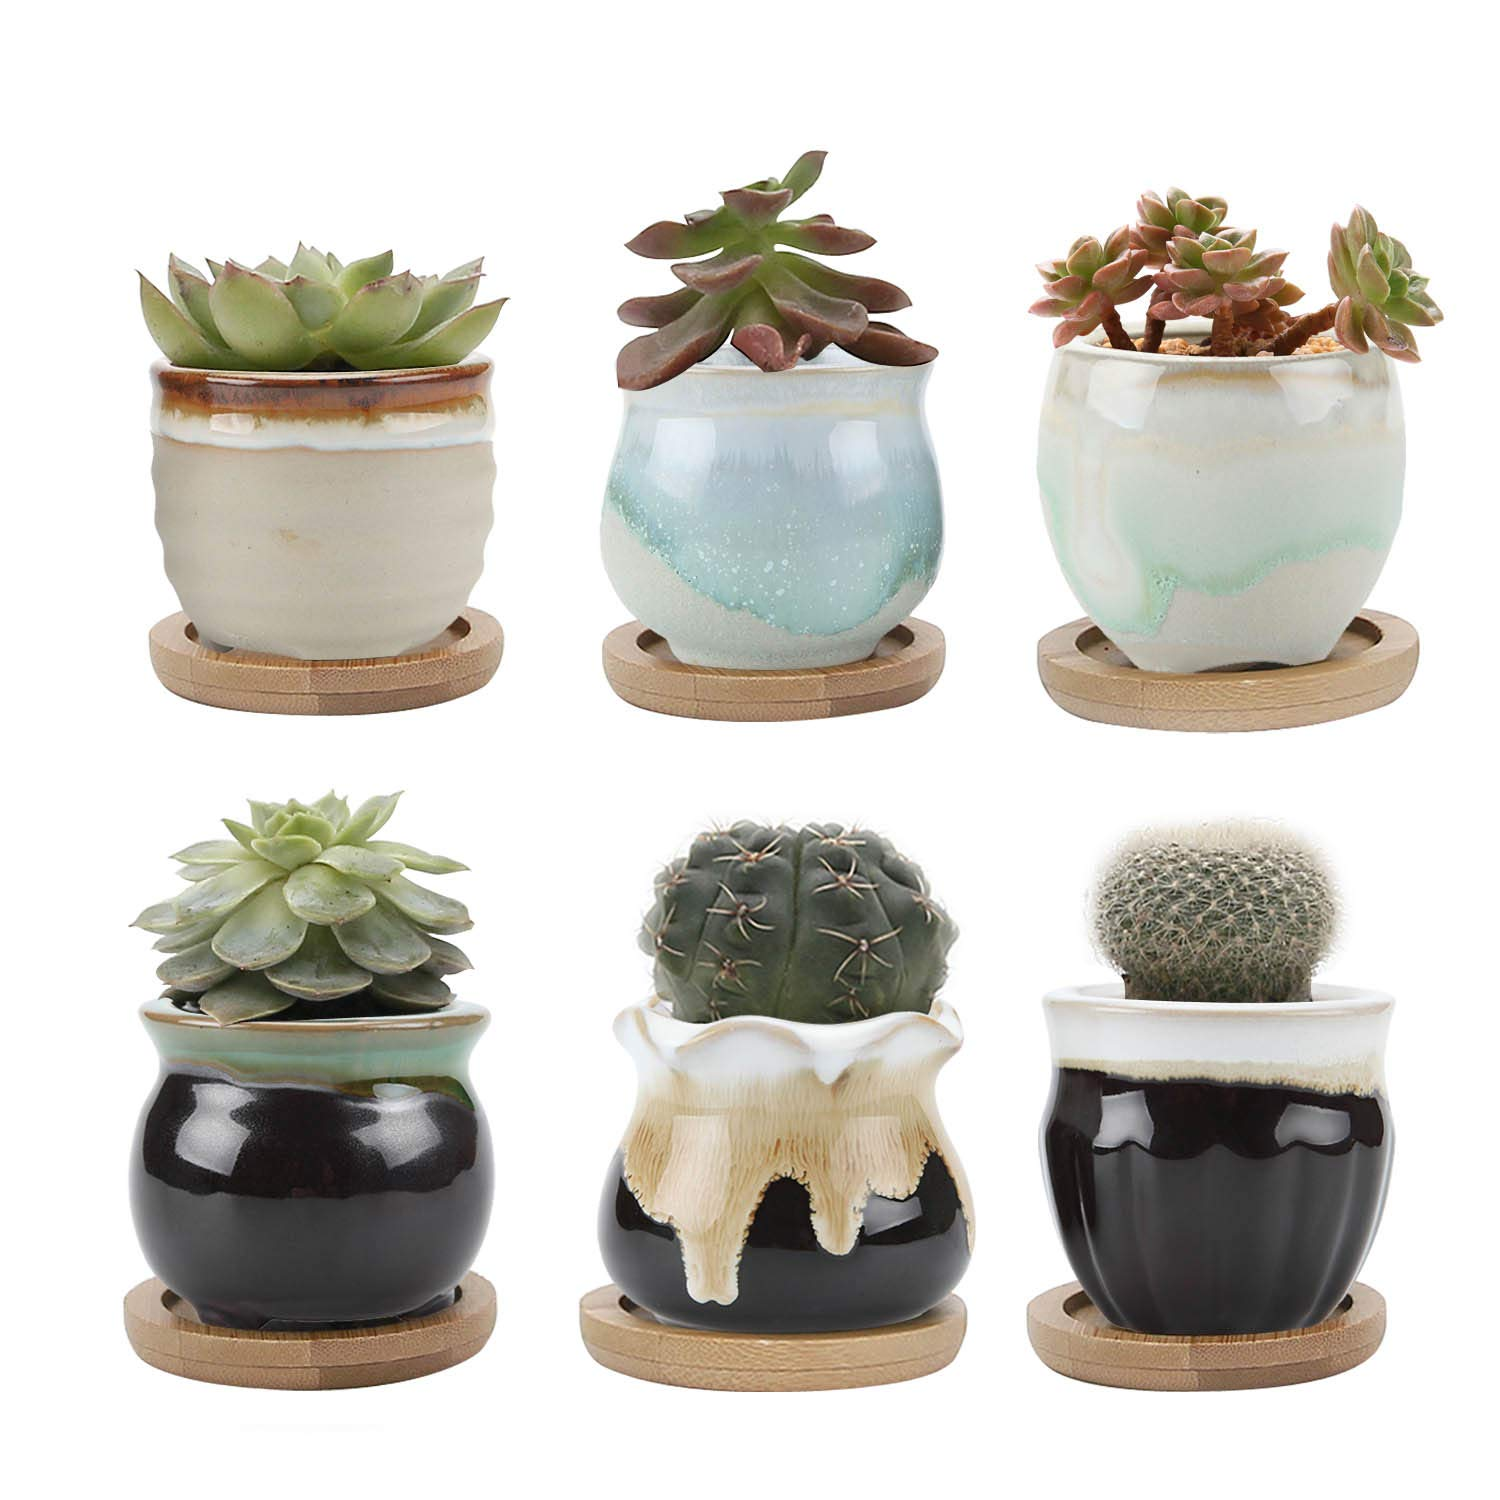 T4U 2.5 Inch Ceramic Succulent Pot,Cactus Planter Pot Plant Container Flower Pot Flowing Glaze Black&White with Bamboo Trays Serial for Pack of 6 for Gardener Perfect Gift for Wedding, Birthday